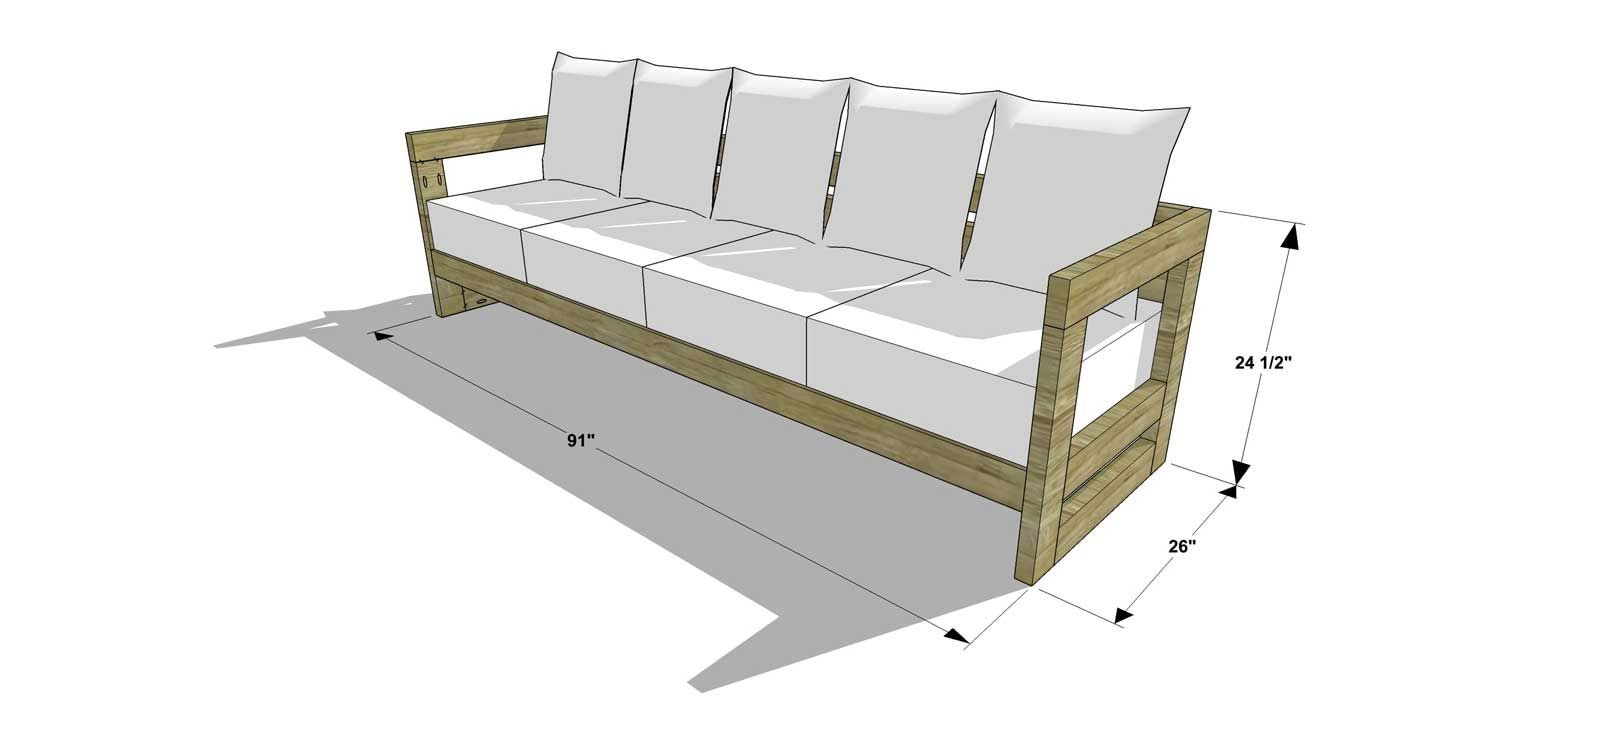 Diy sofa plans build your own couch build your own couch with - It Official You Need An Outdoor Living Space For The Summer Months Ahead So Go For It And Build A Super Stylish Sofa And Solve Your Seating Woes In Just